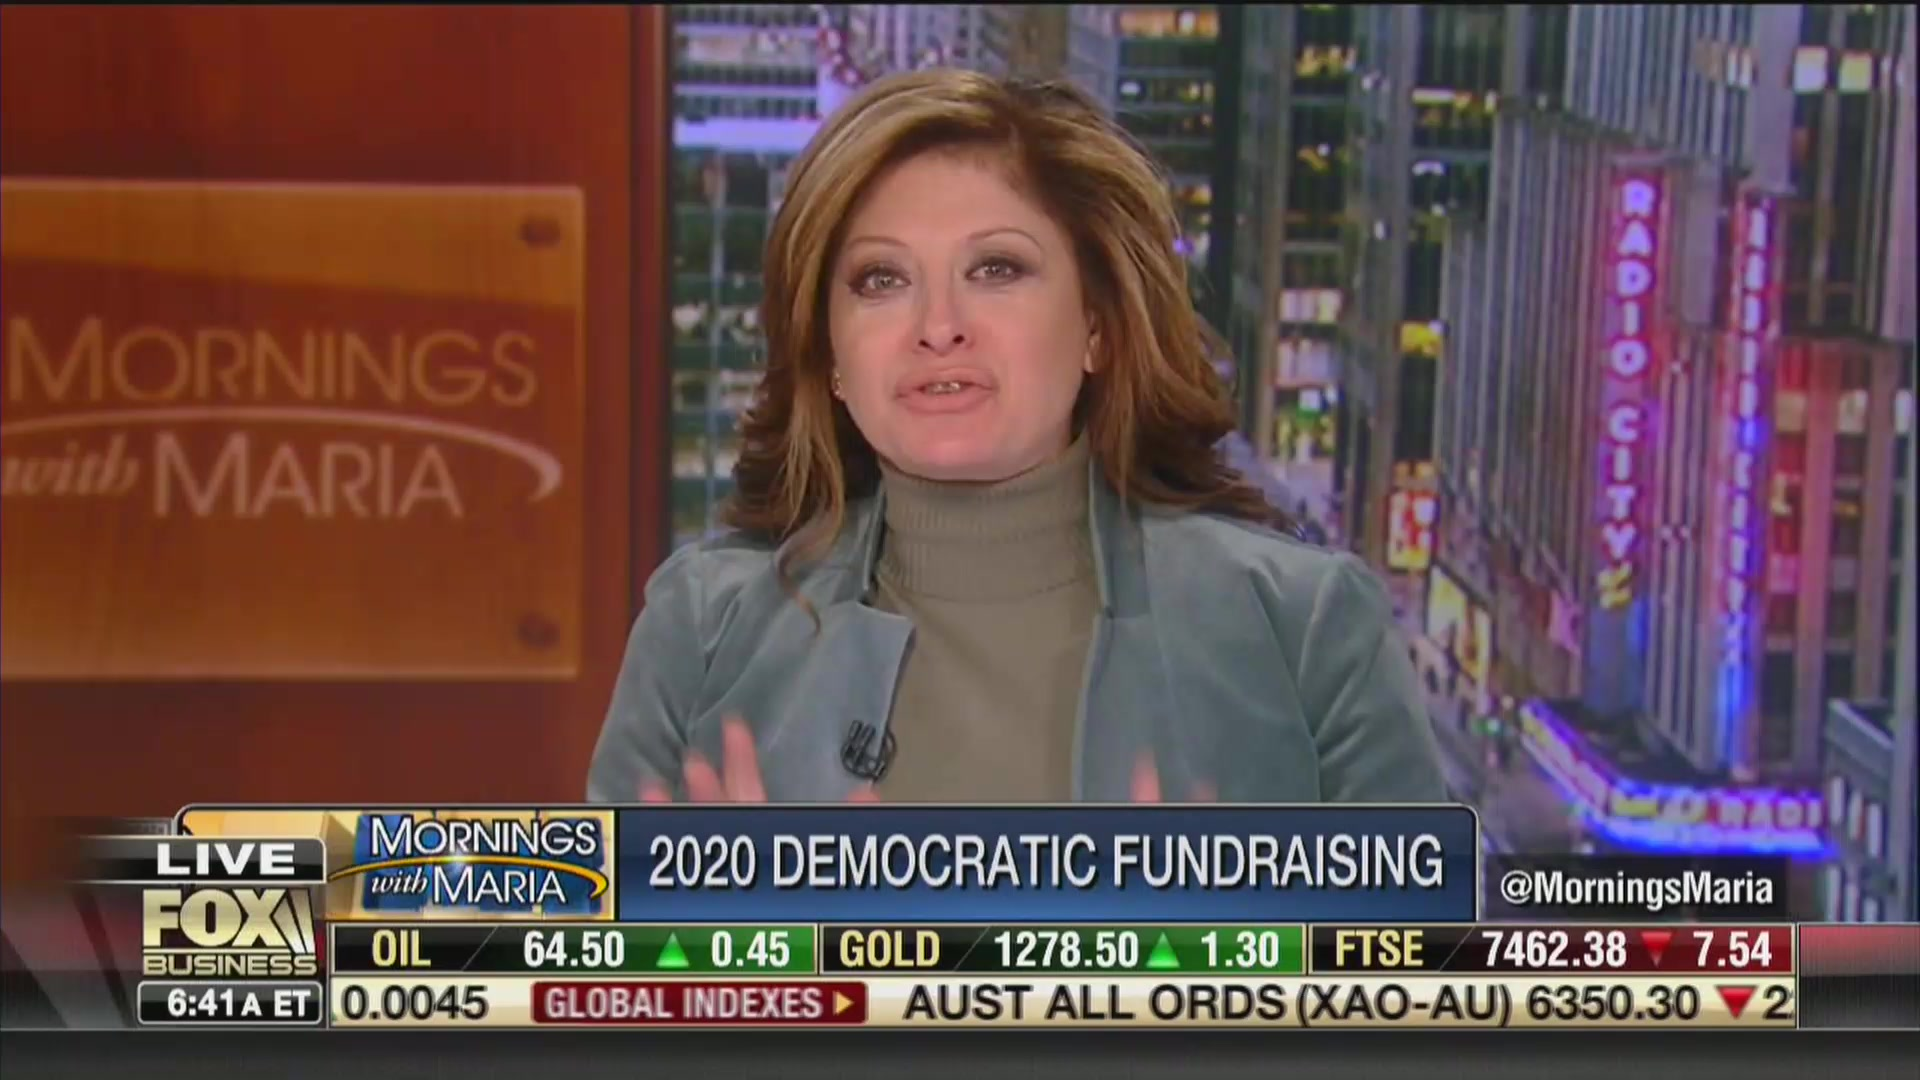 Fox's Maria Bartiromo Blows Up at Guest for Saying the Rich Should Pay Their Fair Share